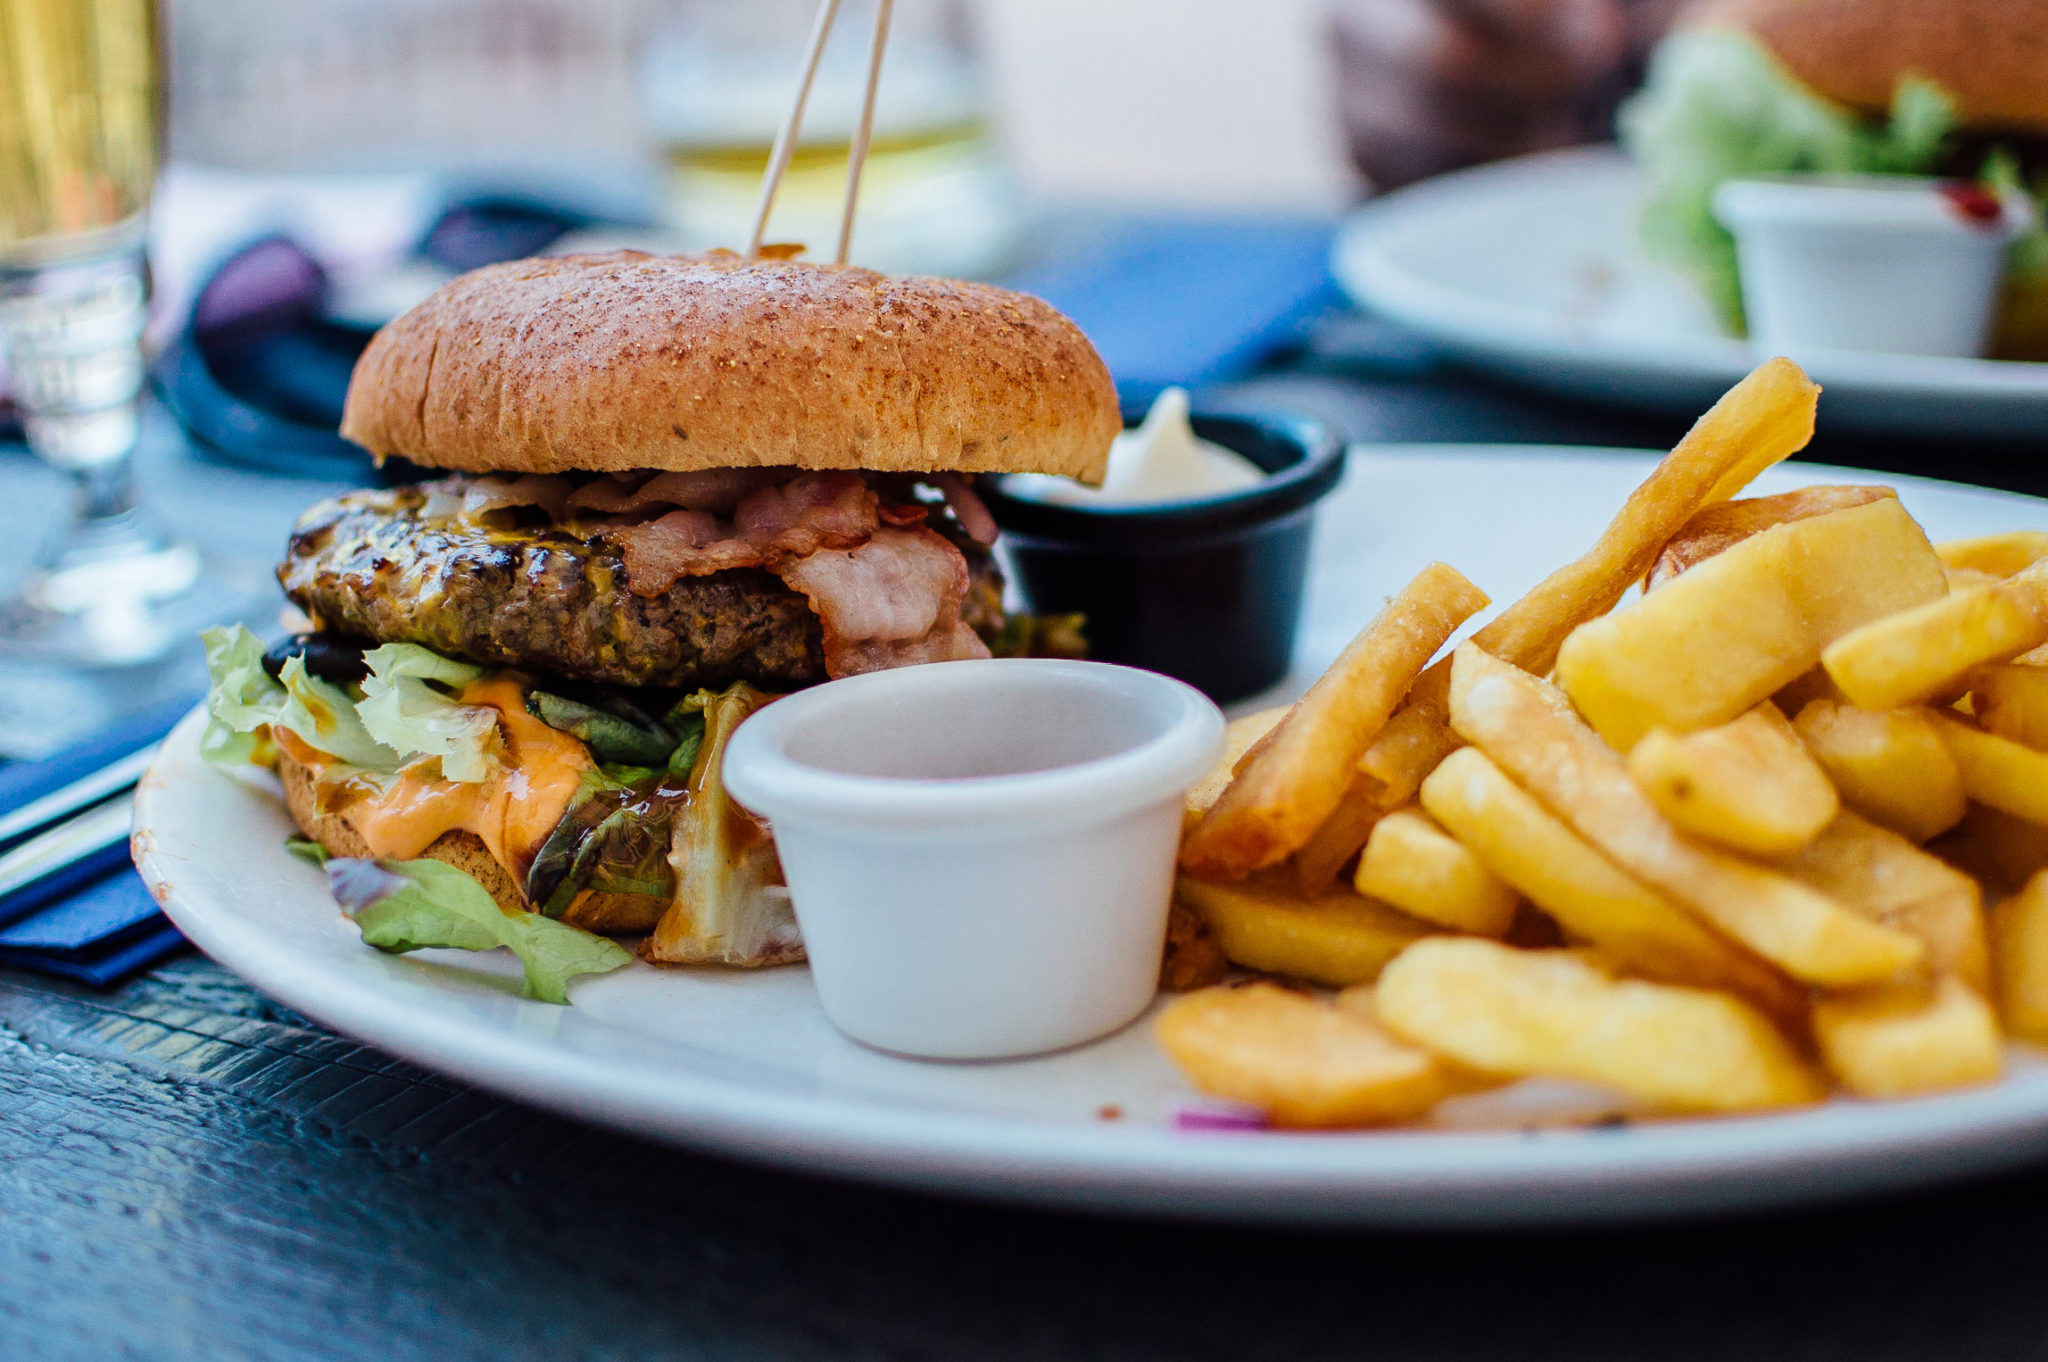 Image of hamburger and fries. Website: Wins Lai, toronto real estate agent